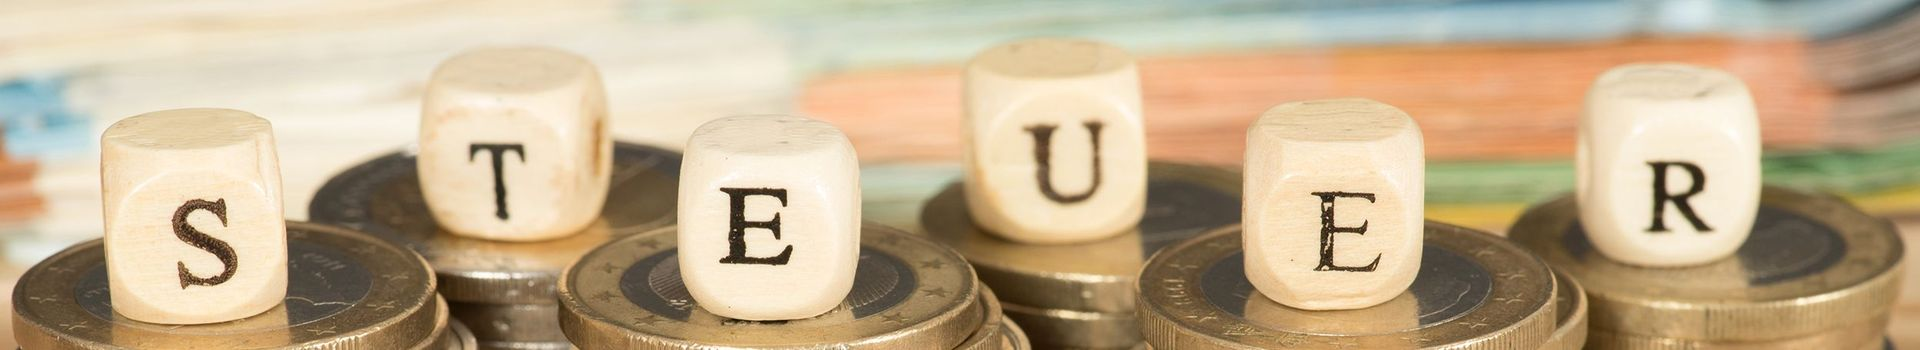 Wood block mit tax letters on top of euro coins